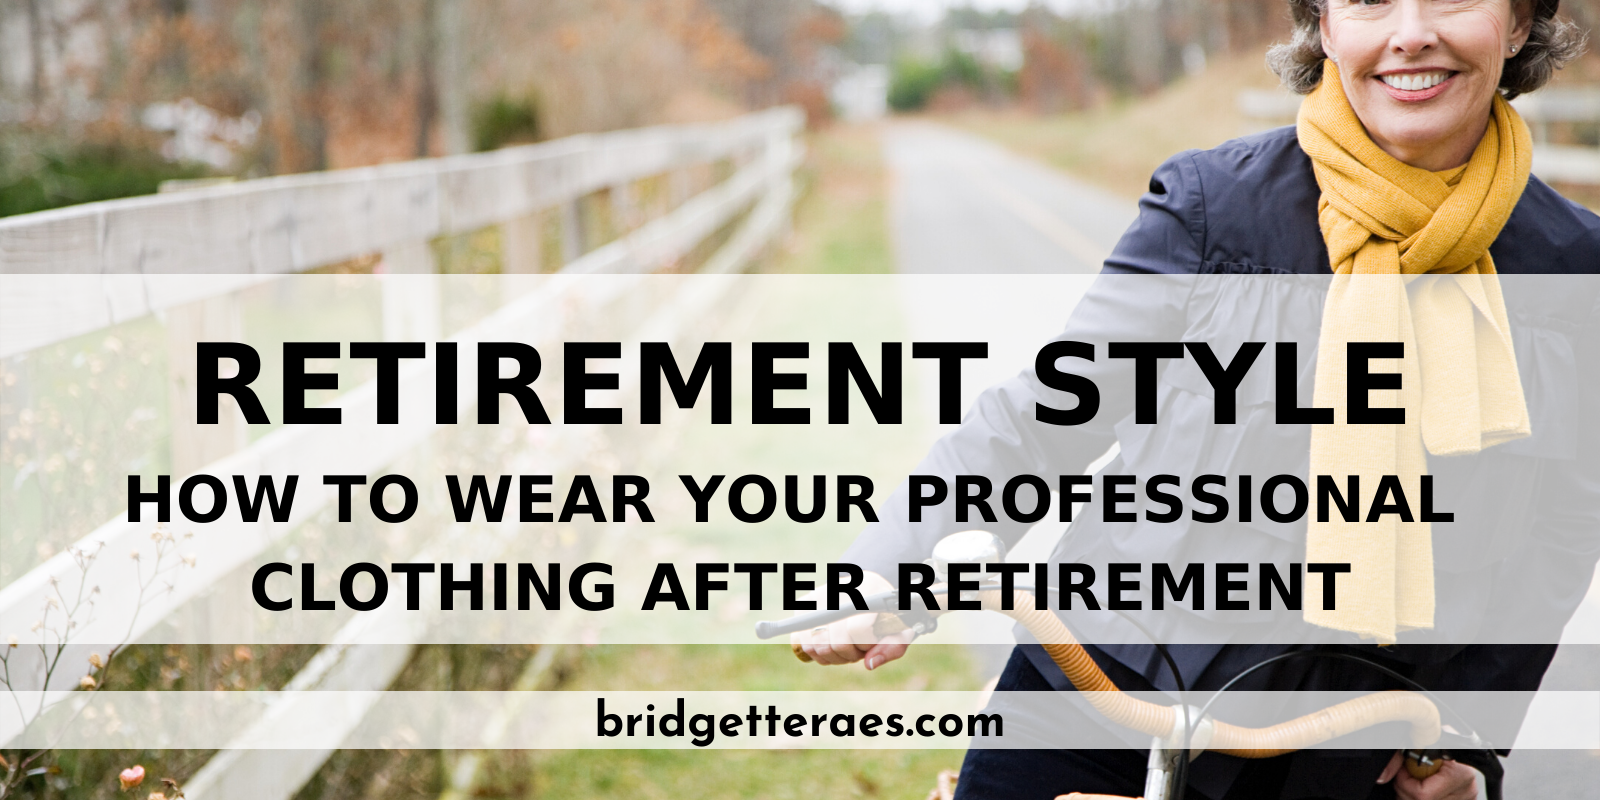 Retirement Style: How to Wear Your Professional Clothing After Retirement